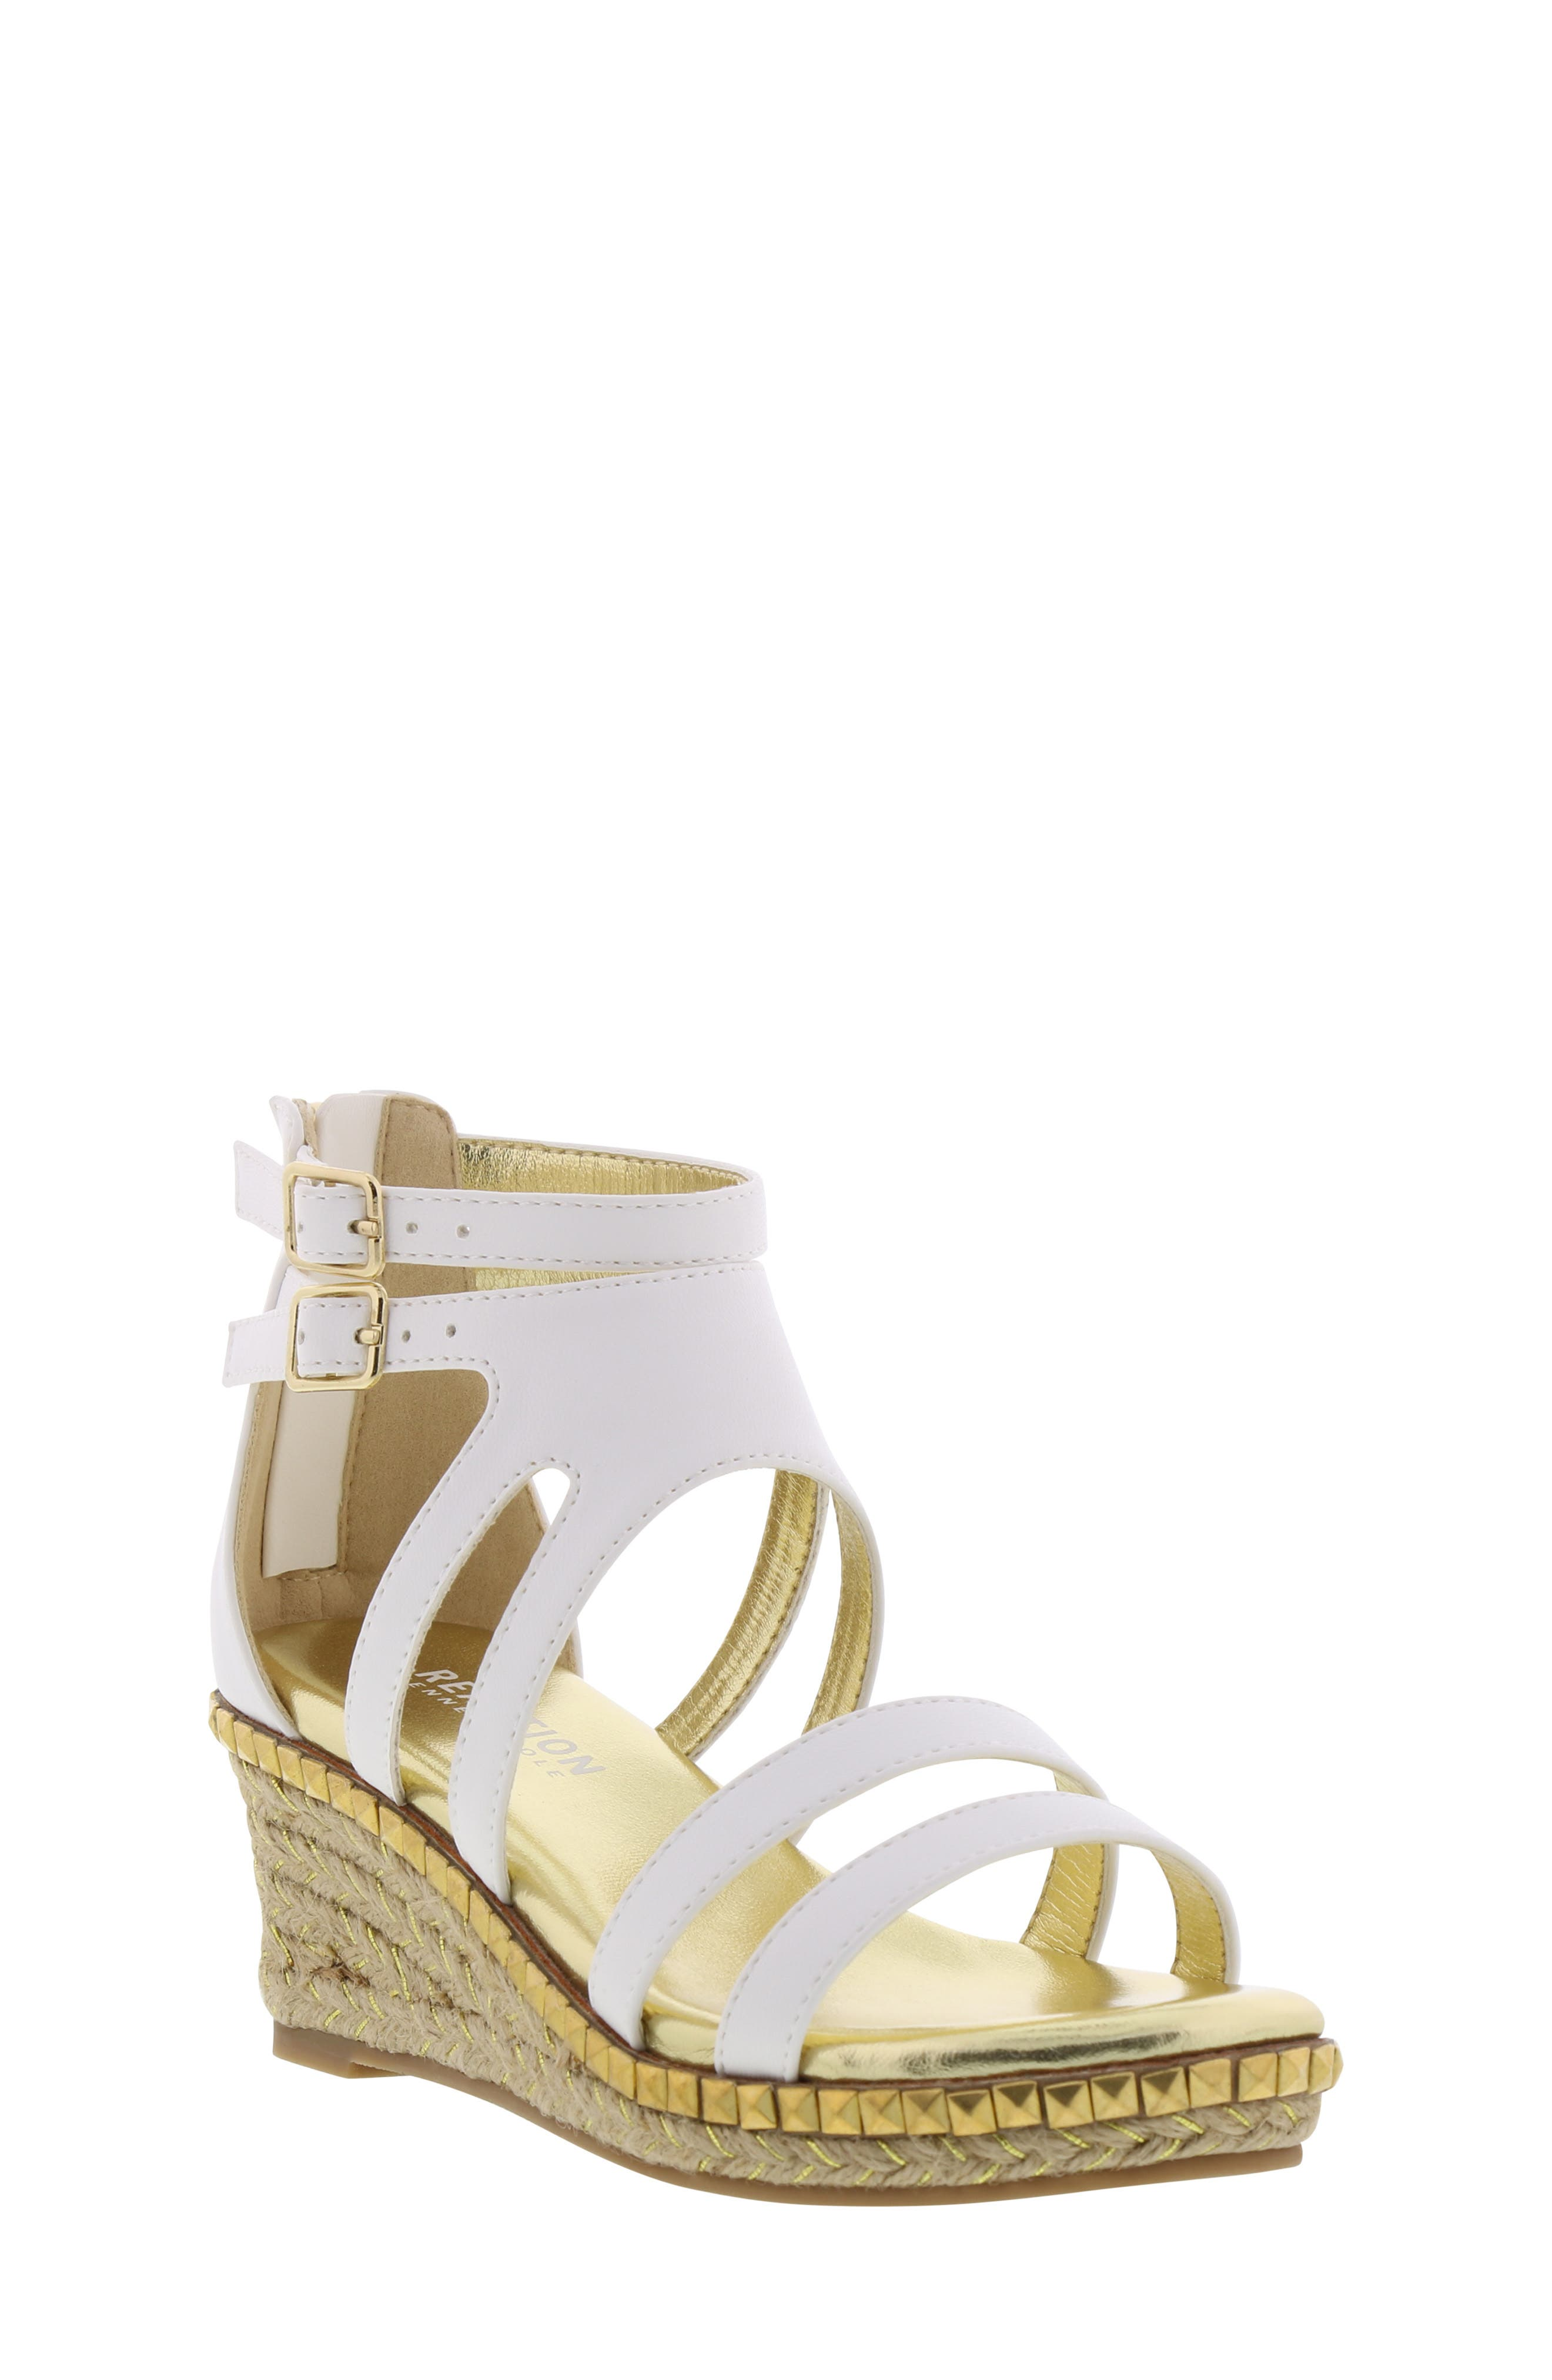 REACTION KENNETH COLE, Reed Splash Wedge Sandal, Main thumbnail 1, color, WHITE